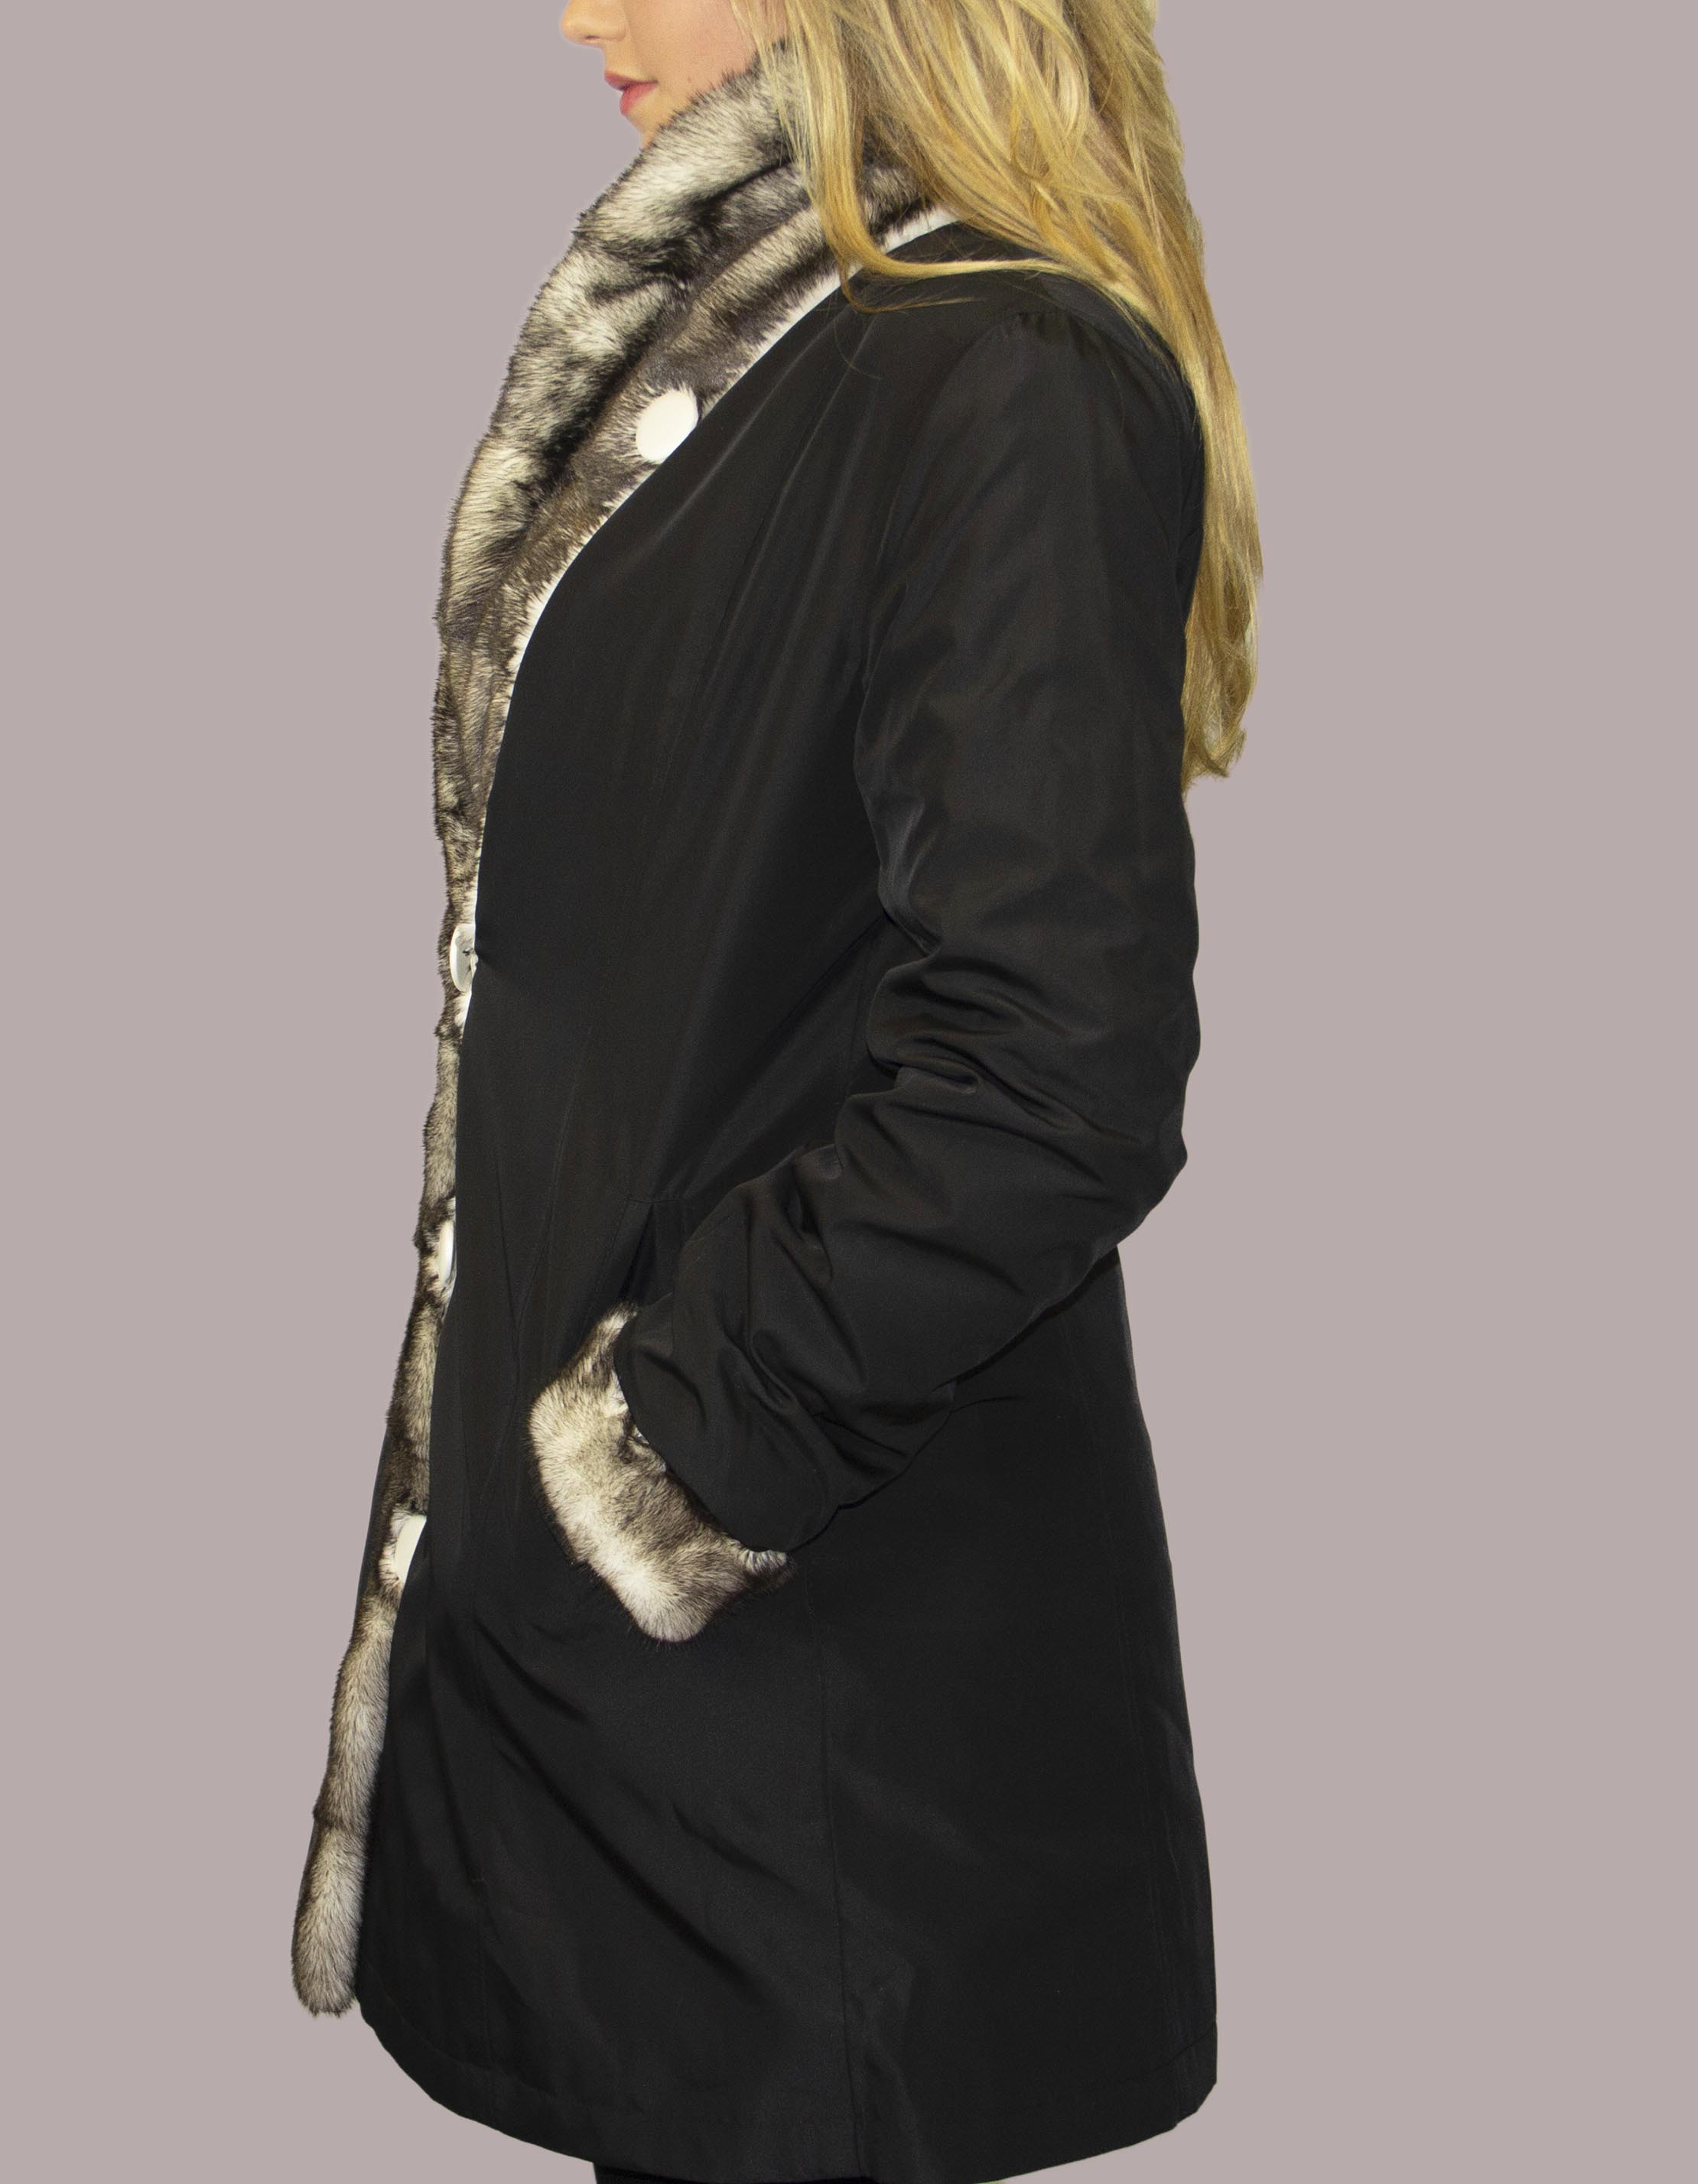 Bleached Sheared Sectional Mink Coat with Bleached Natural Mink Tuxedo Trim and Cuff Reversible to Taffeta